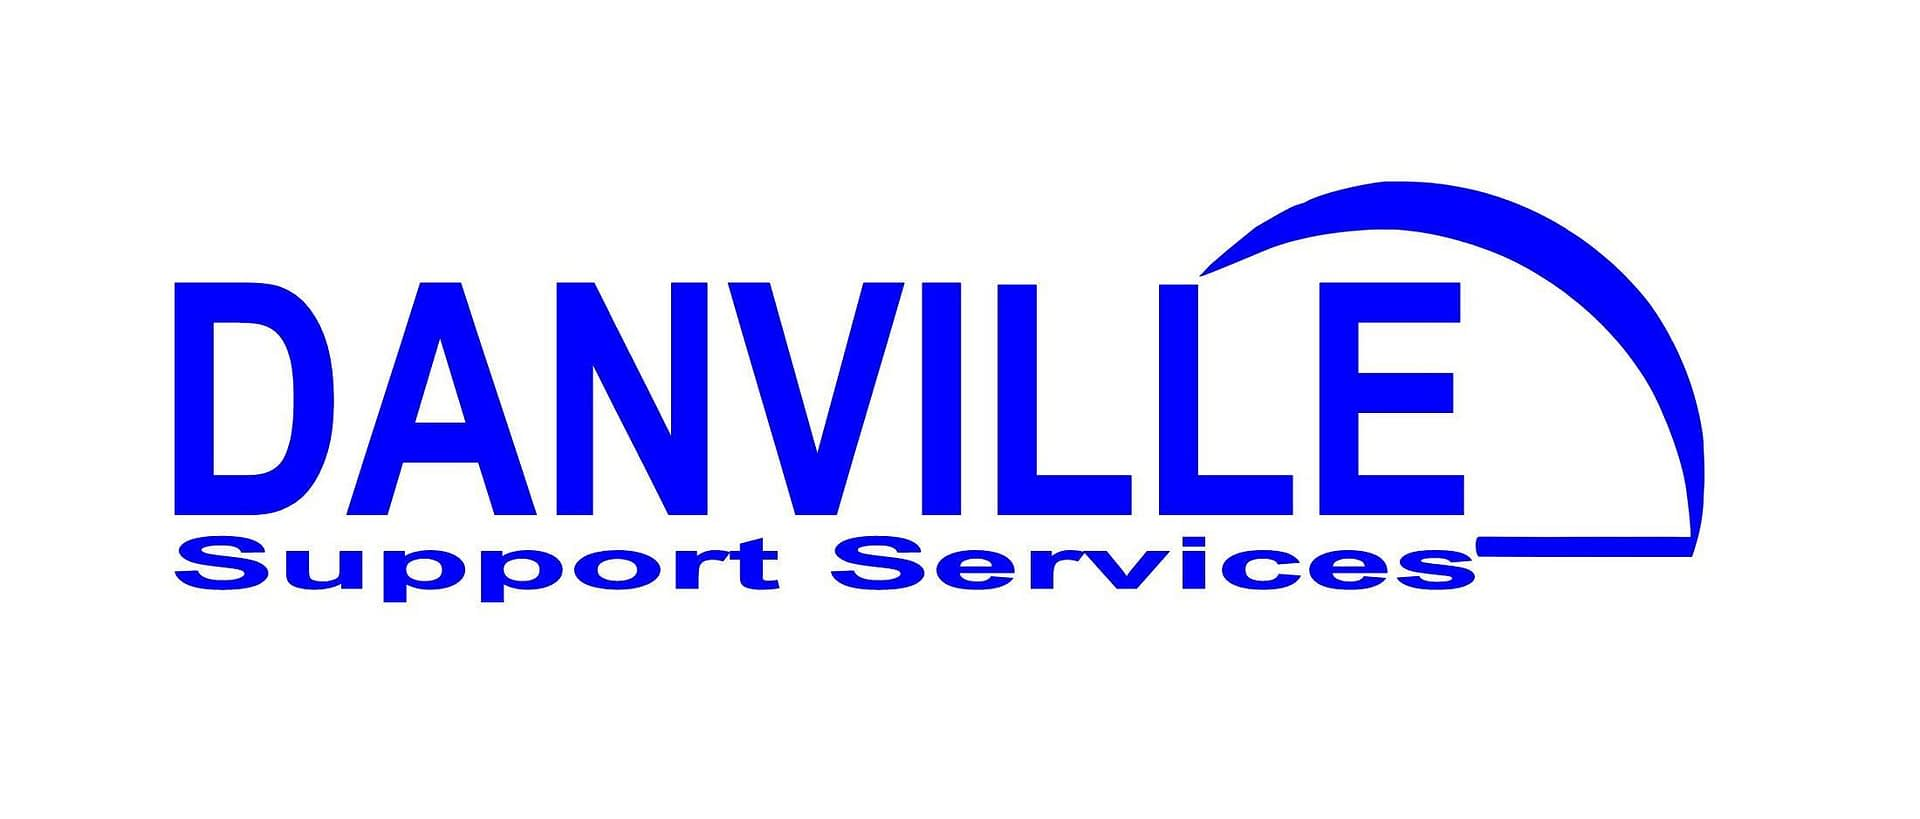 Danville Support Services